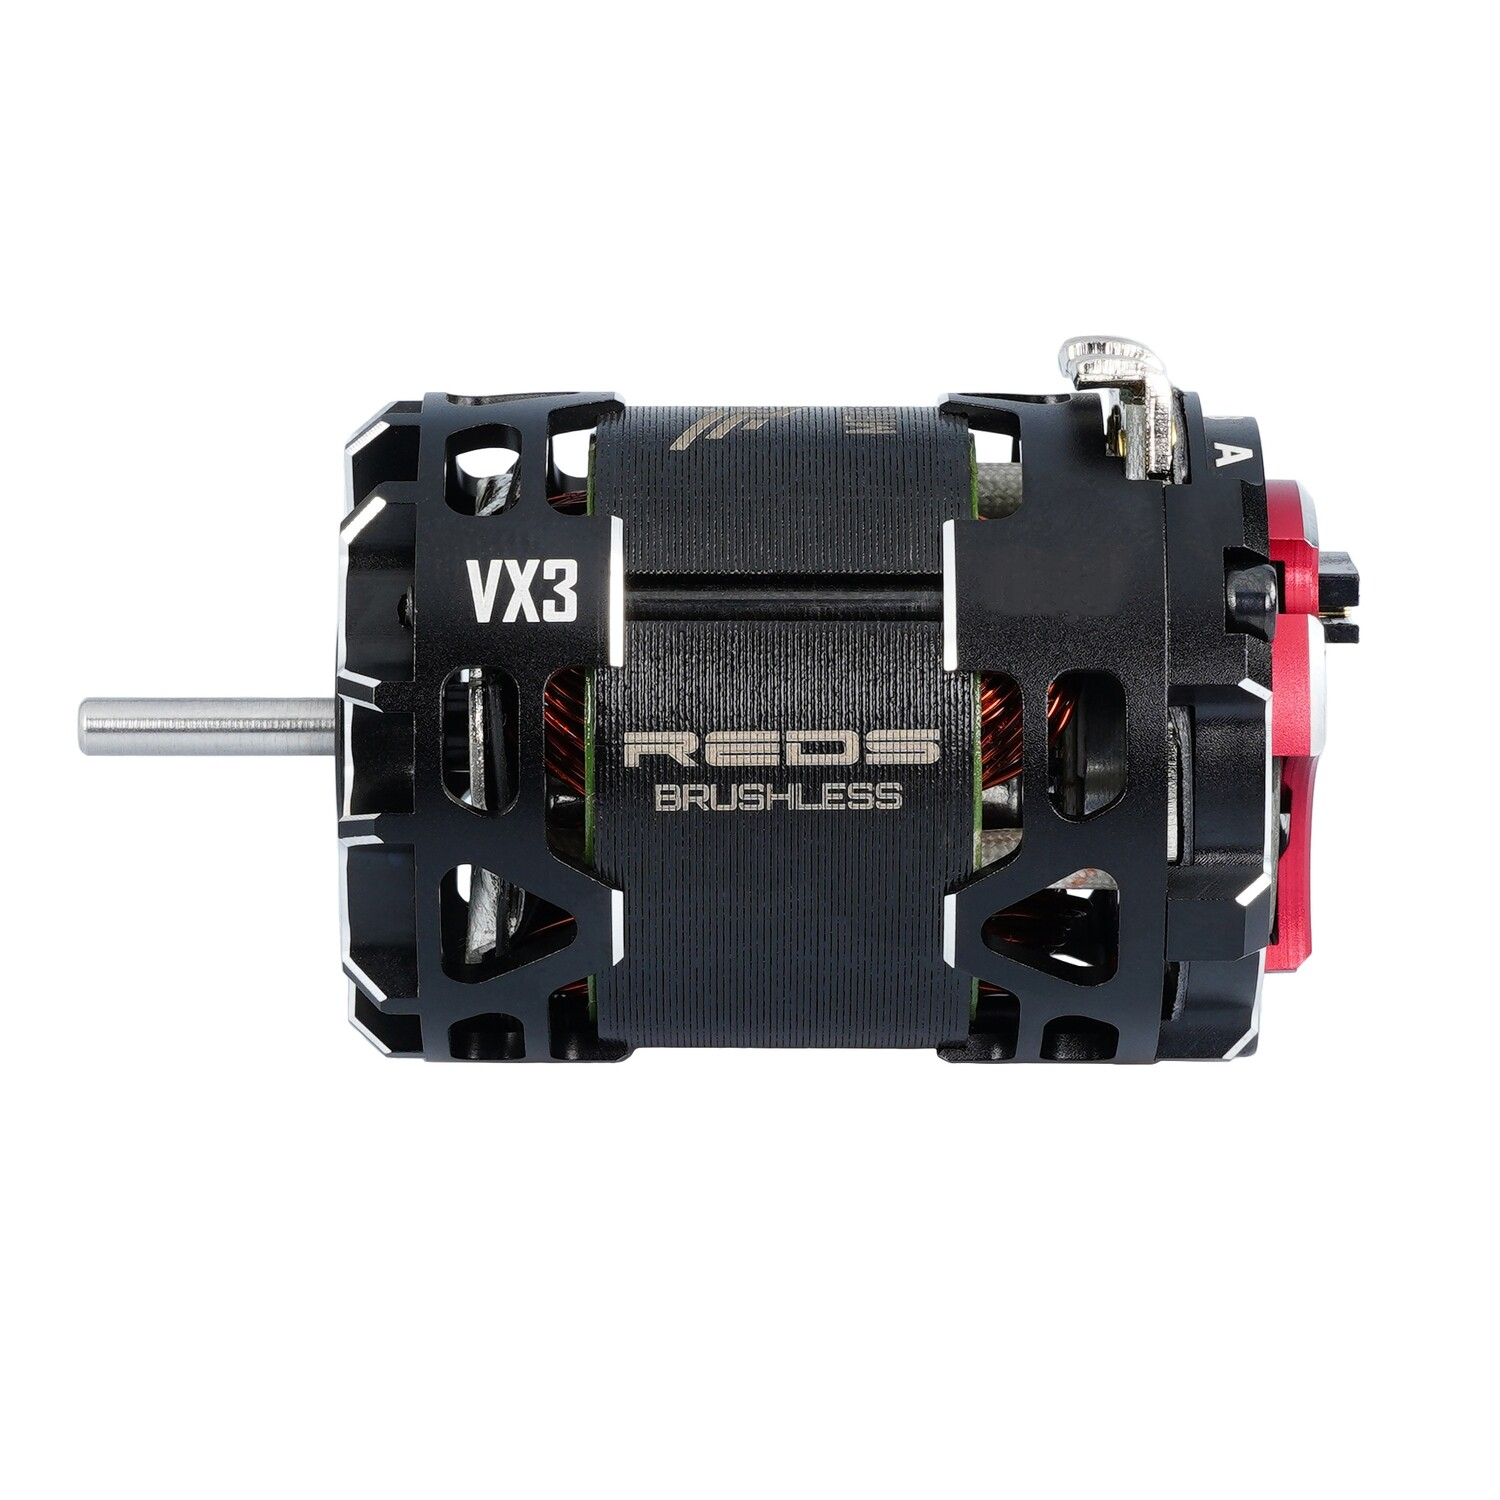 BRUSHLESS MOTOR REDS VX3 540 13.5T 2 POLE SENSORED HIGH TORQUE